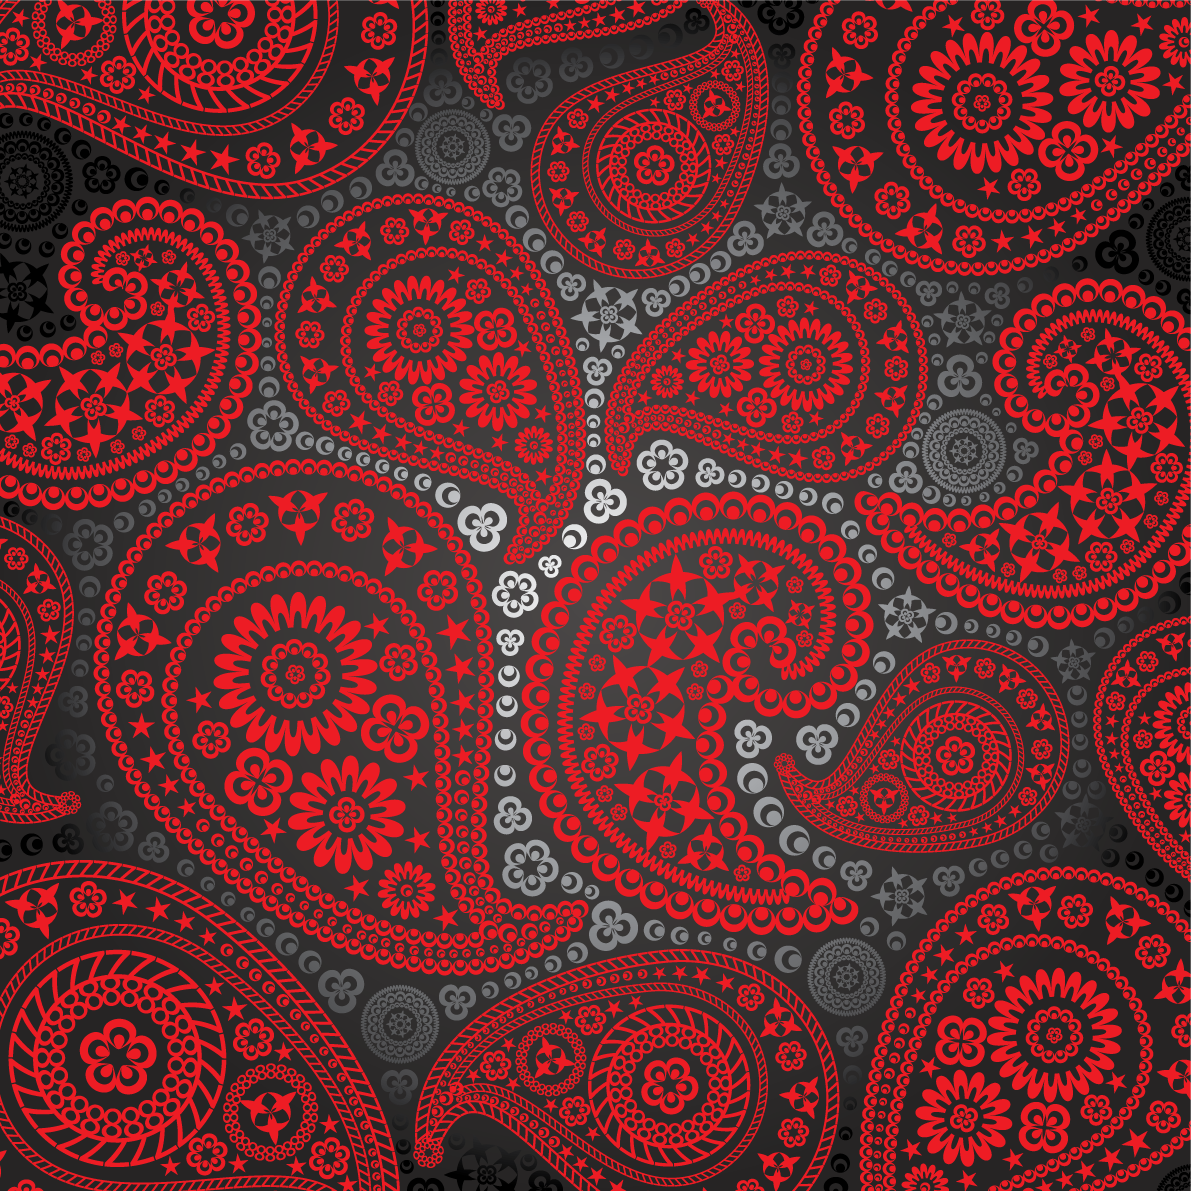 Red Wallpaper: Red Paisley Wallpaper